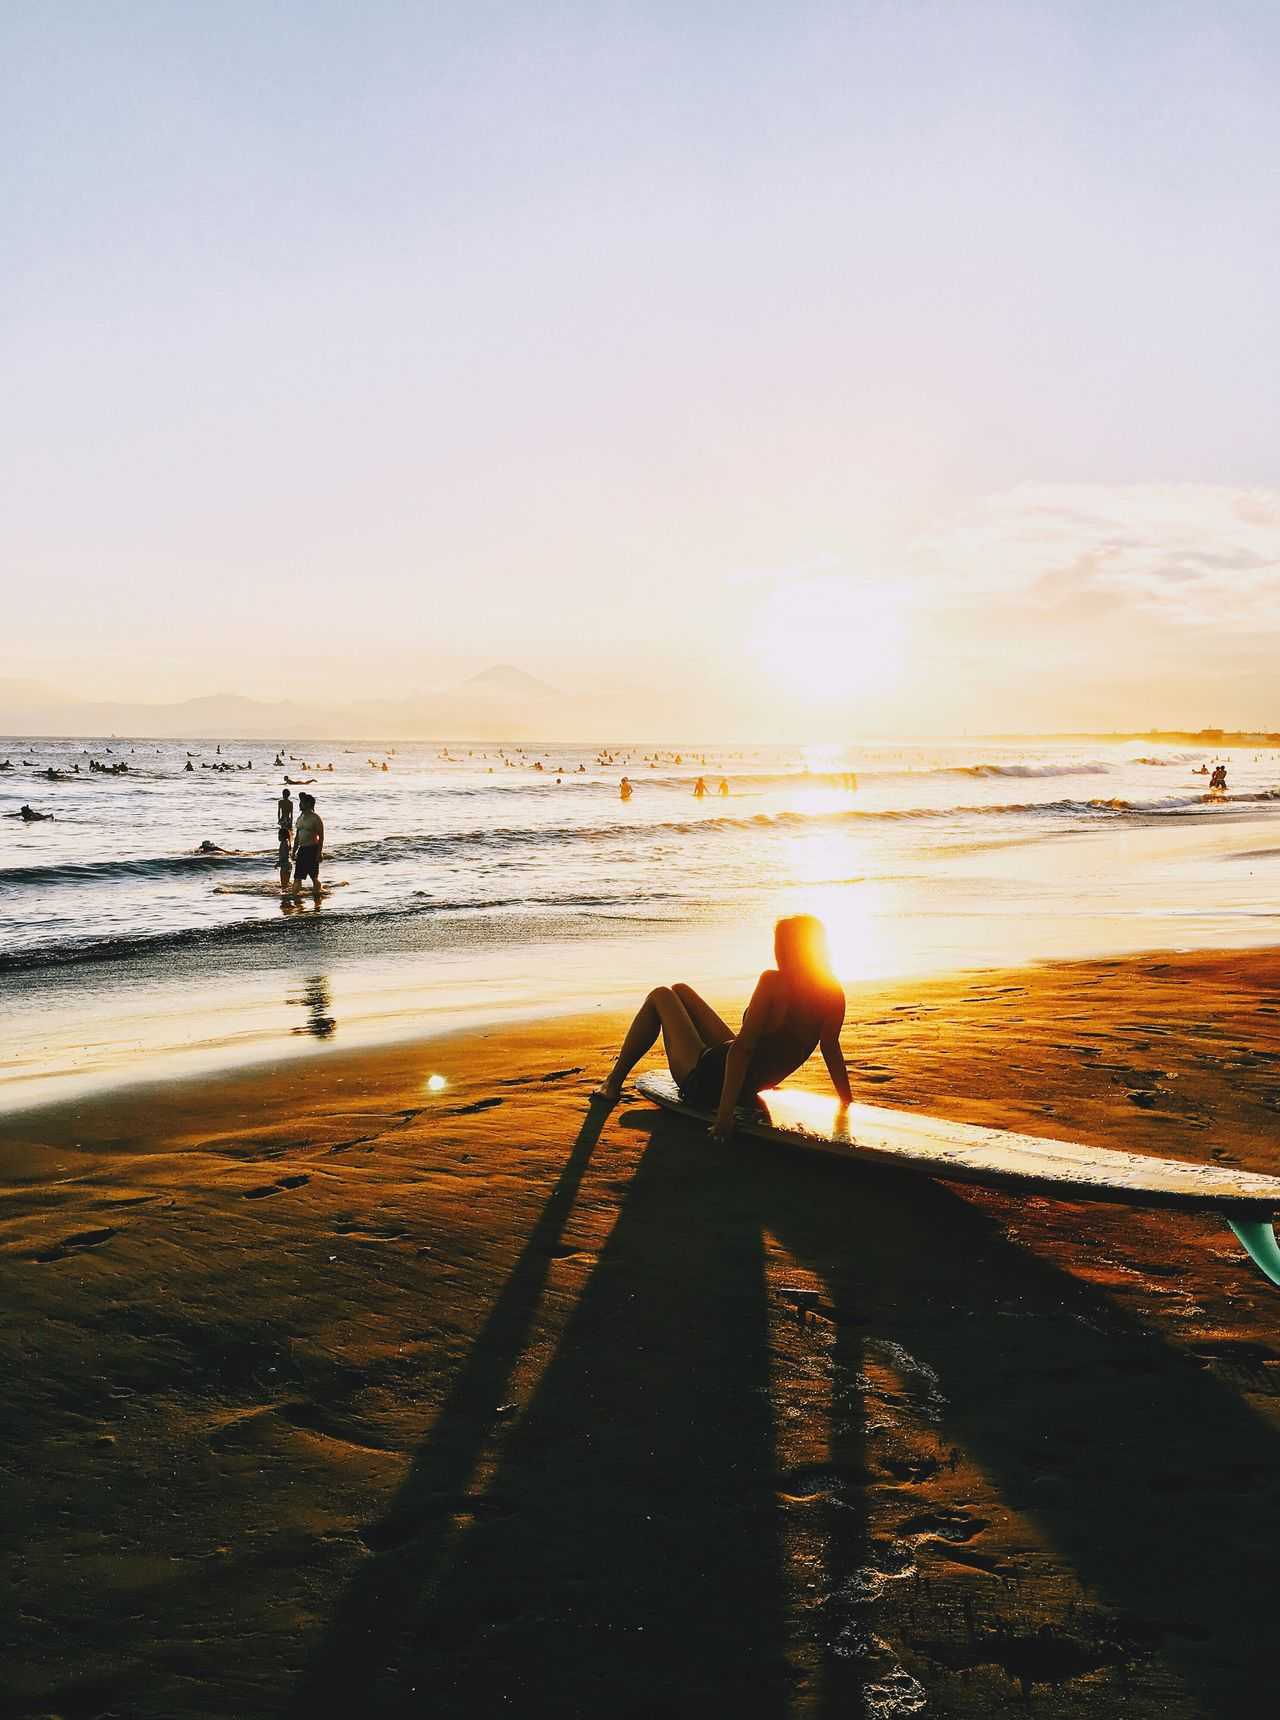 Sunset beach Sea Beach Sunset Travel Destinations Beauty In Nature Tourism Travel IPhoneography Iphineonly